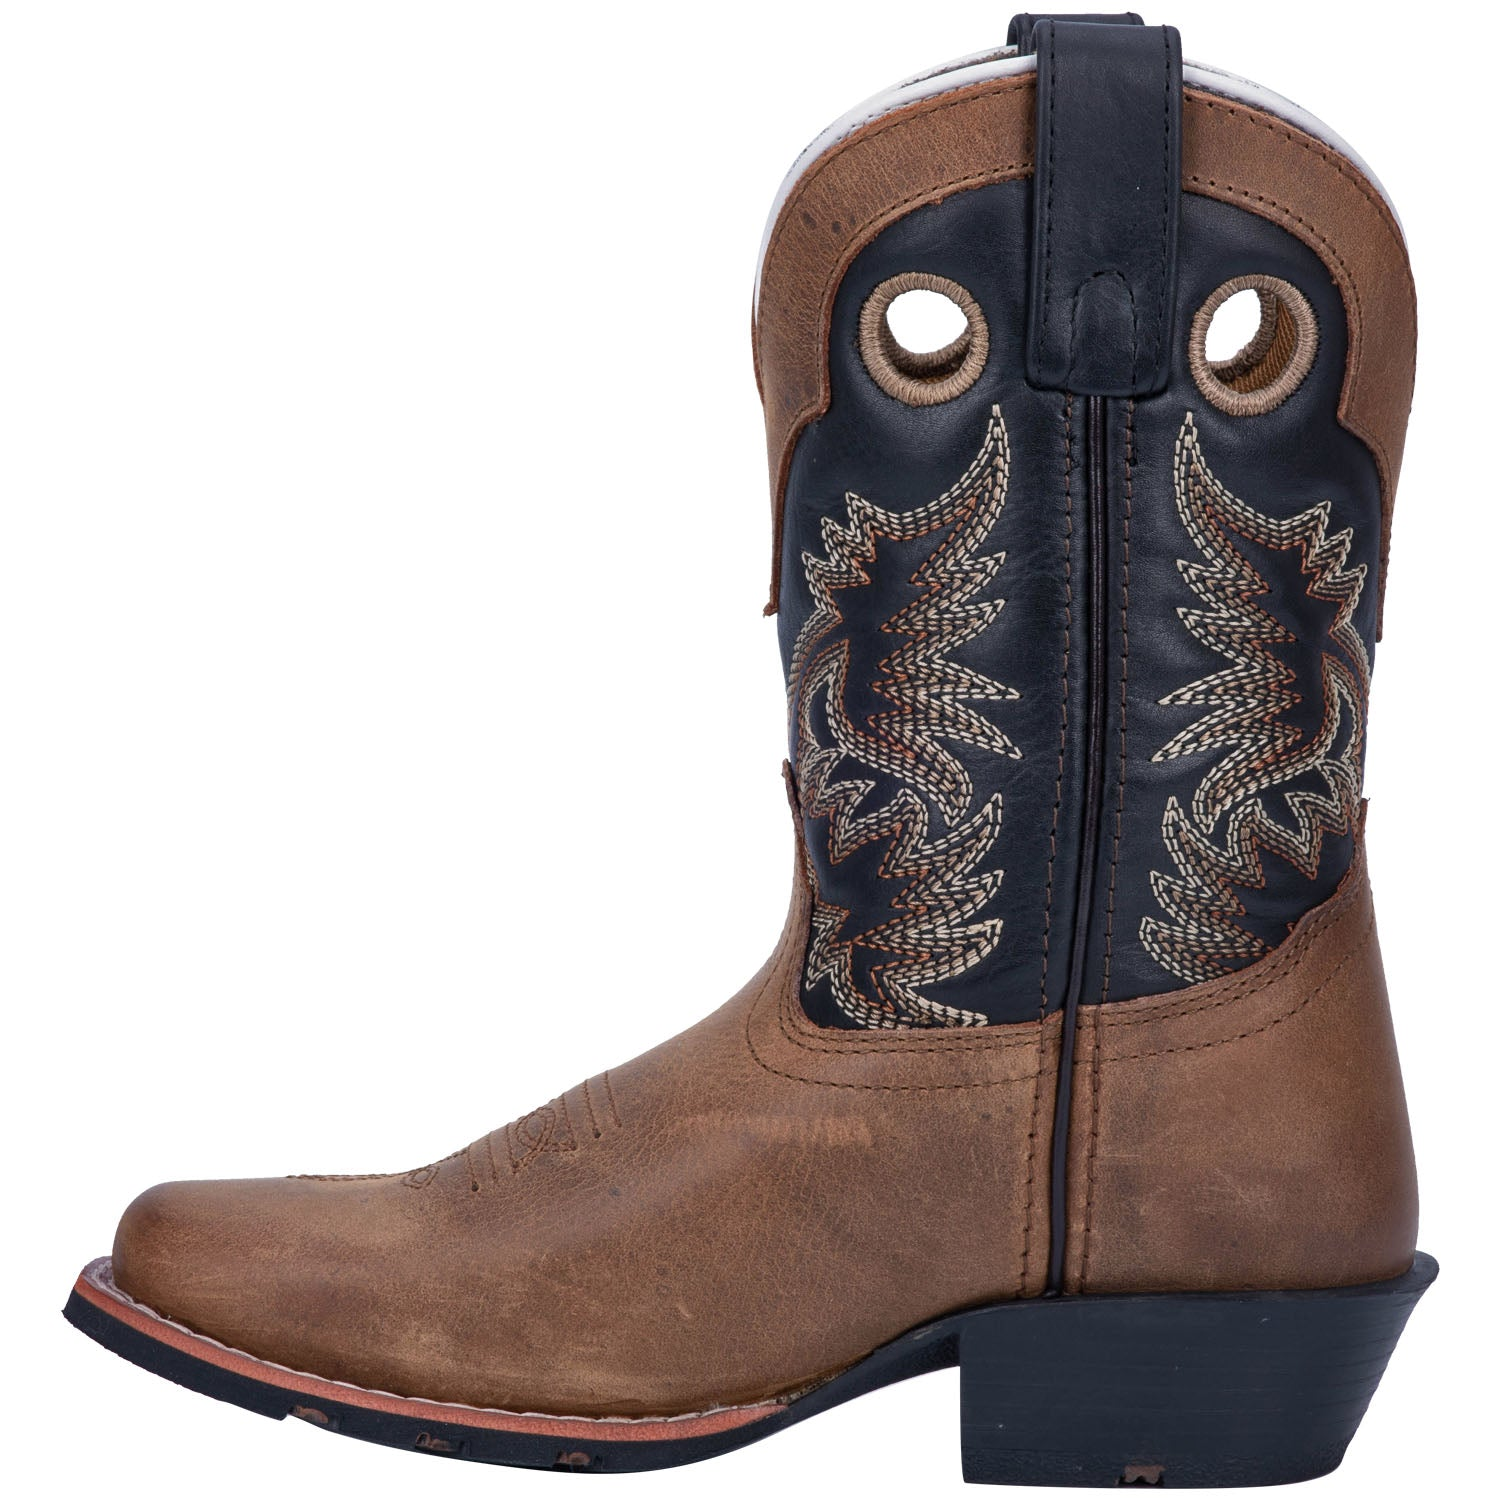 RASCAL LEATHER CHILDREN'S BOOT 4254085677098